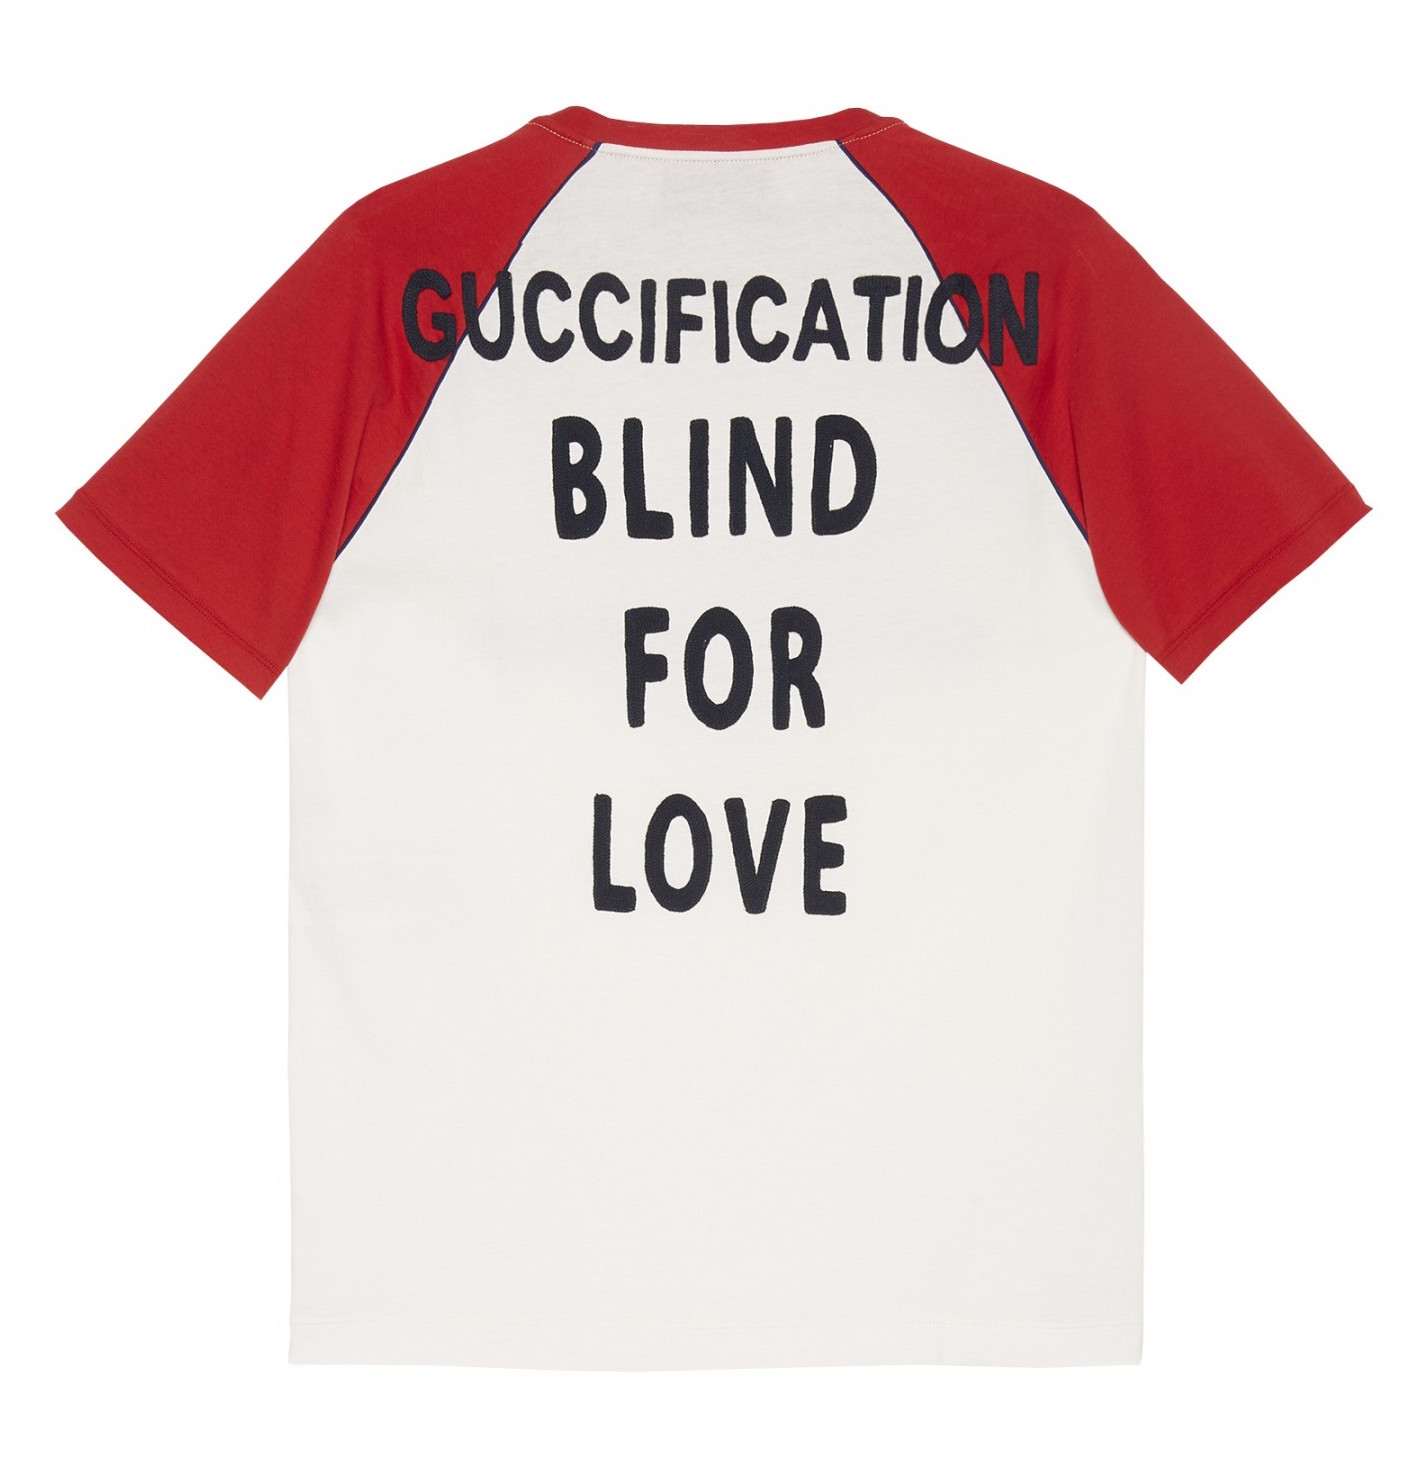 Gucci x DSM Guccification Blind for Love t-shirt